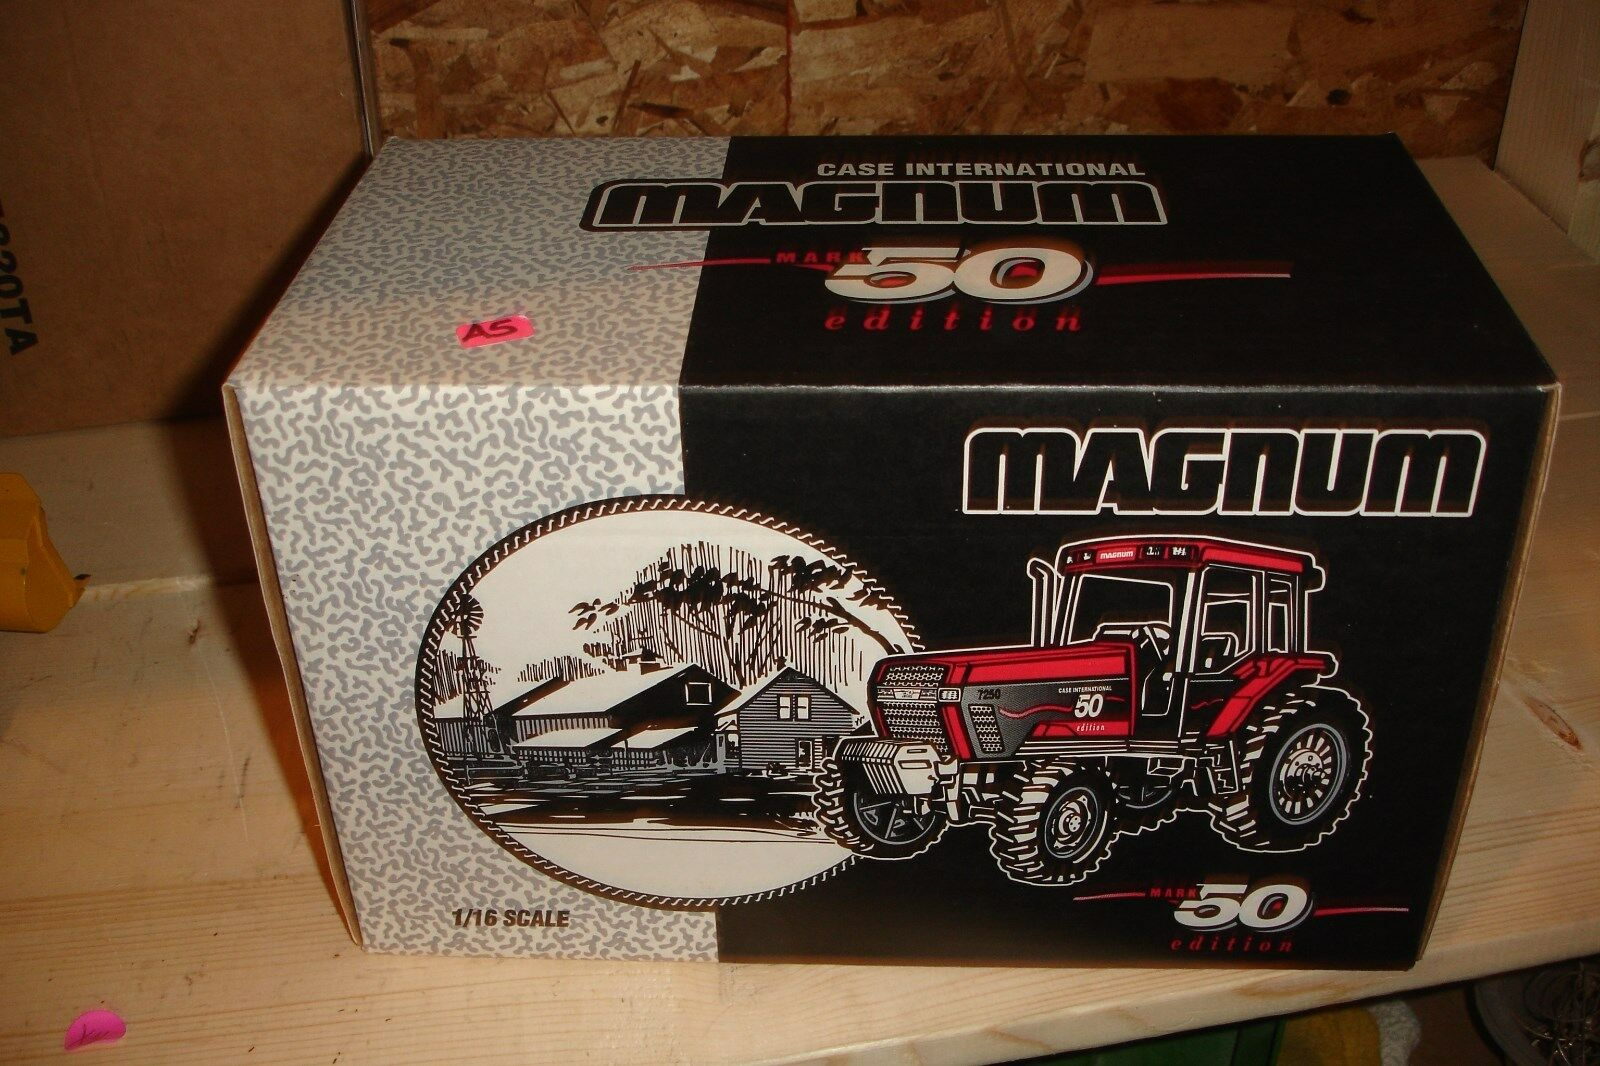 1 16 Case International 7250 Mark 50th Addition toy tracror